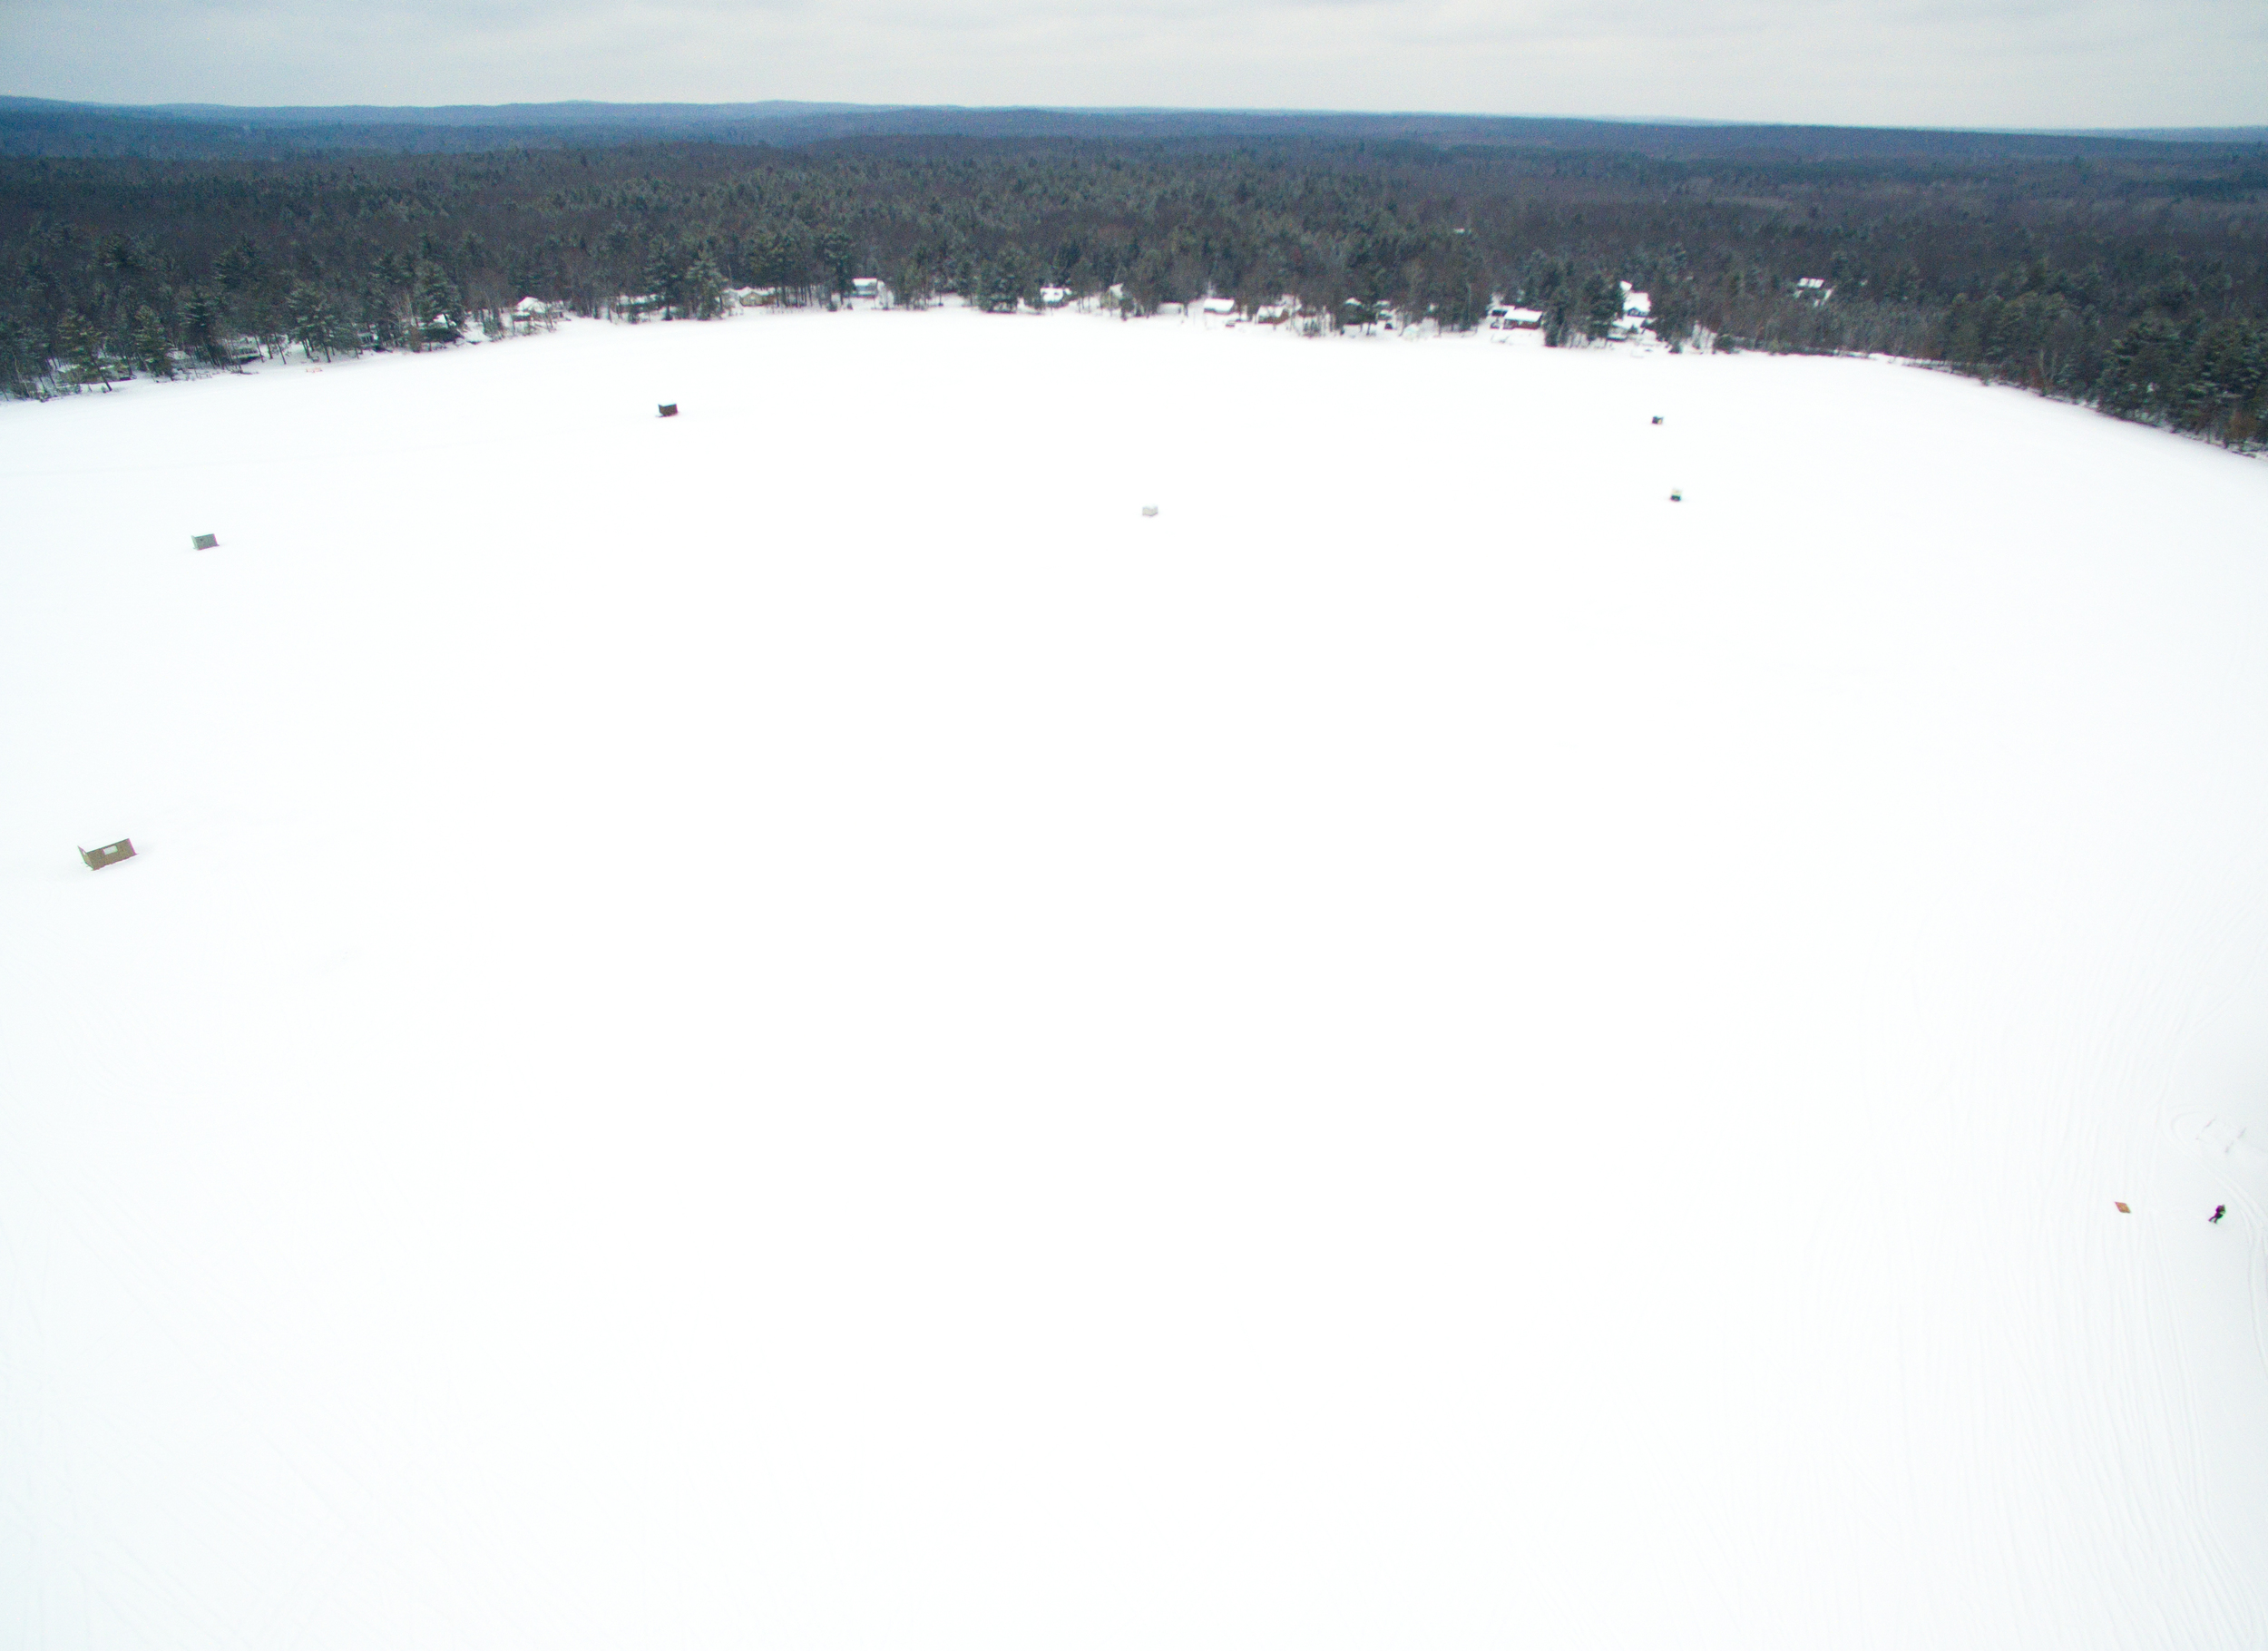 west side of lake